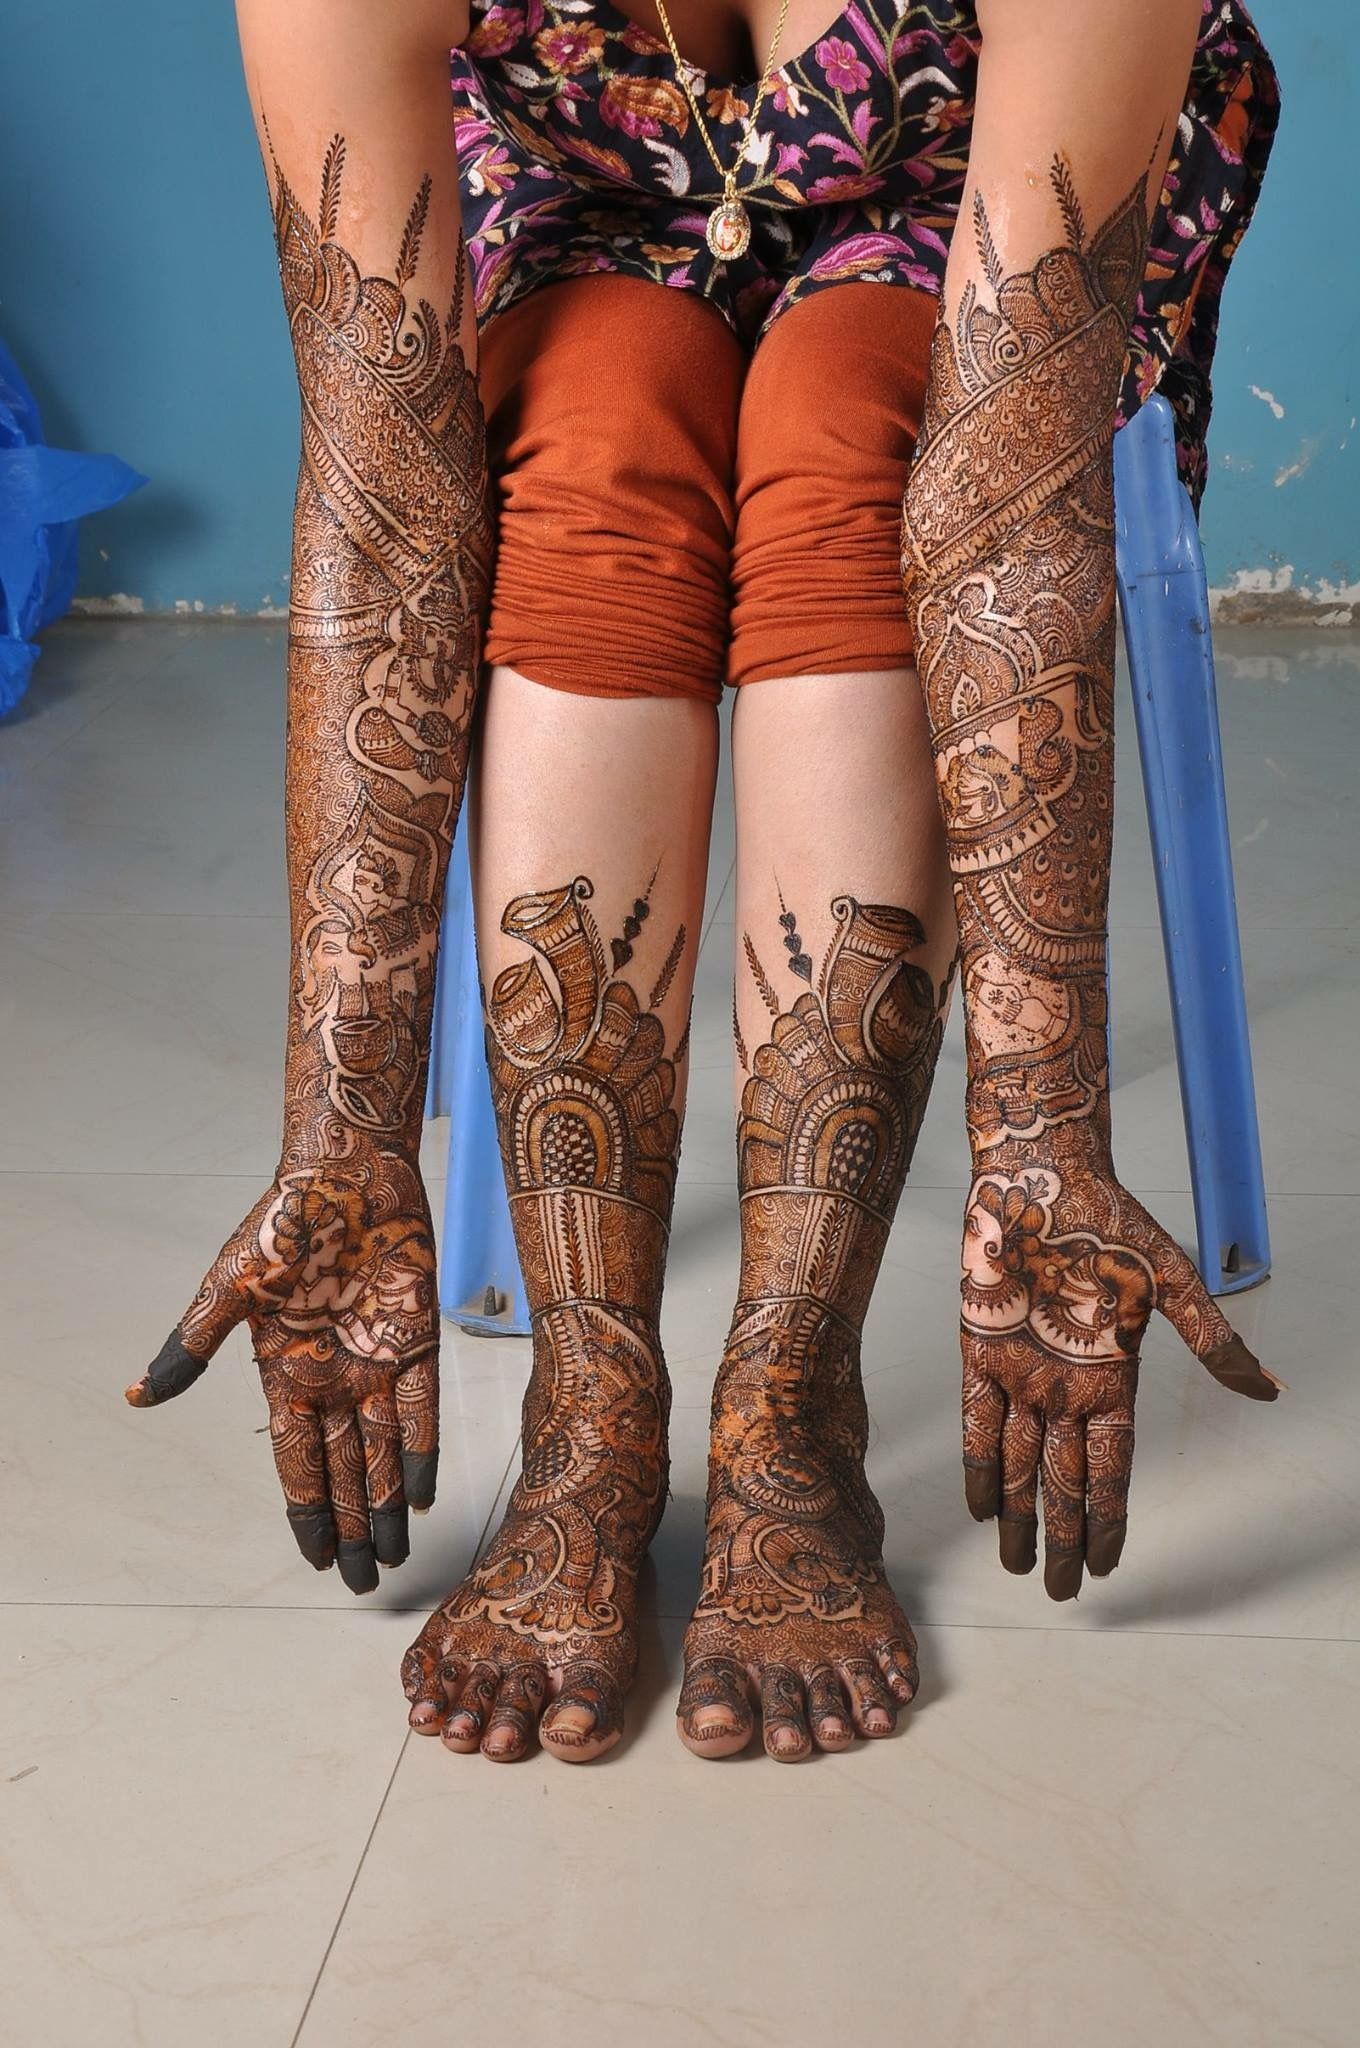 Fosterginger Pinterest Com More Pins Like This One At Fosterginger Pinterest No Pin Limits Mehndi Designs Bridal Mehndi Designs Mehndi Design Images